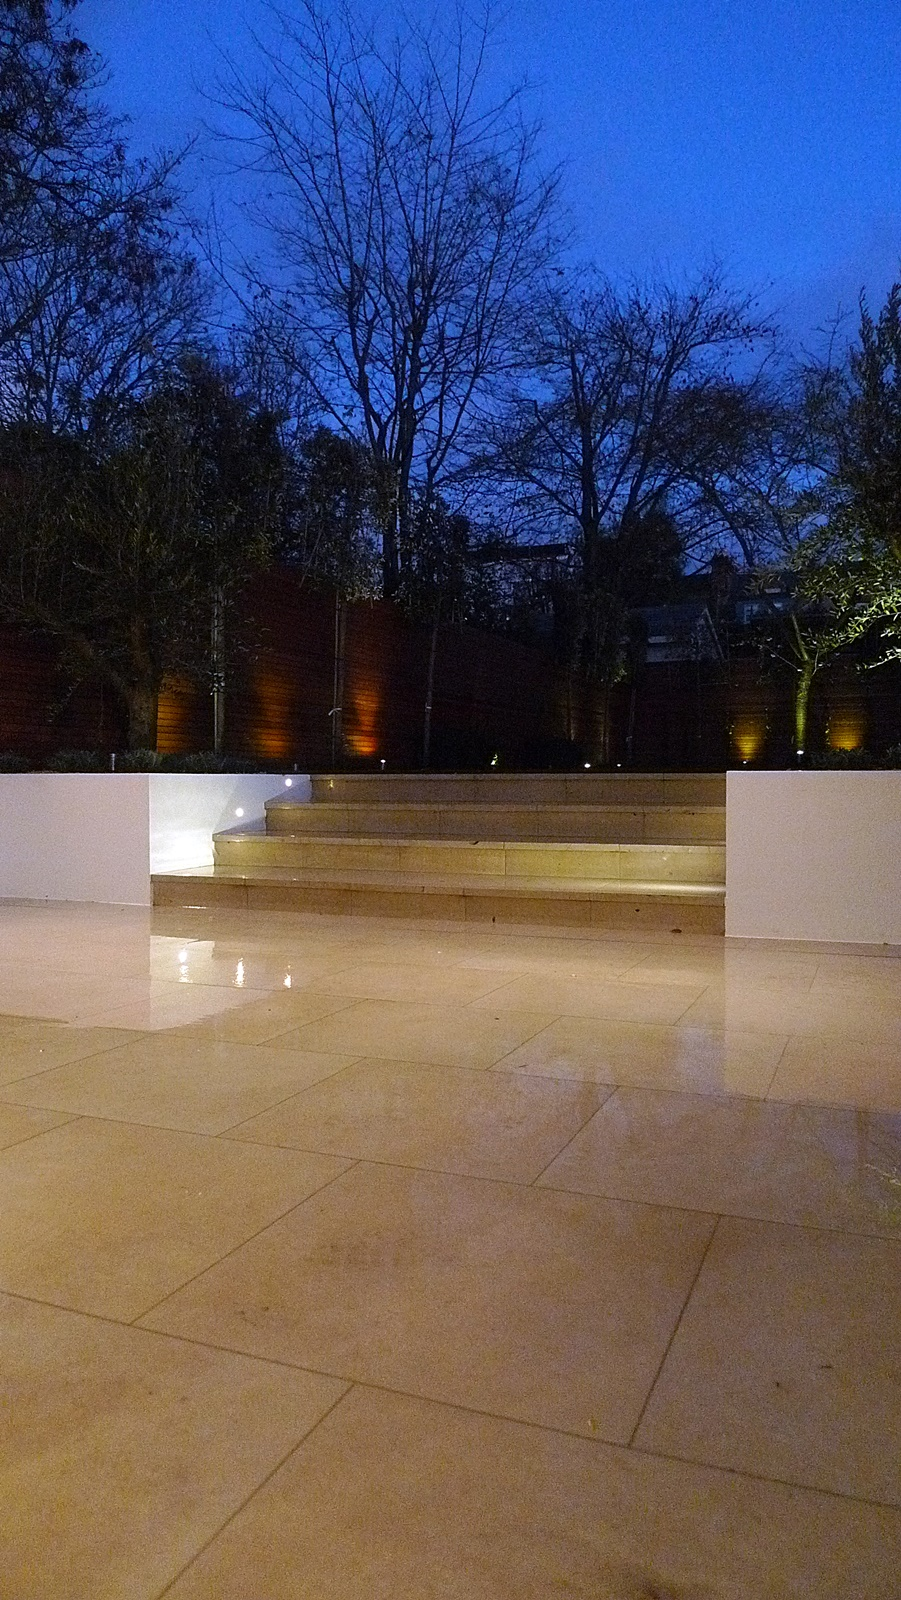 modern garden design night view garden cream smooth paving raised beds screen hardwood pleach trees balham clapham fulham chelsea kensington mayfair london